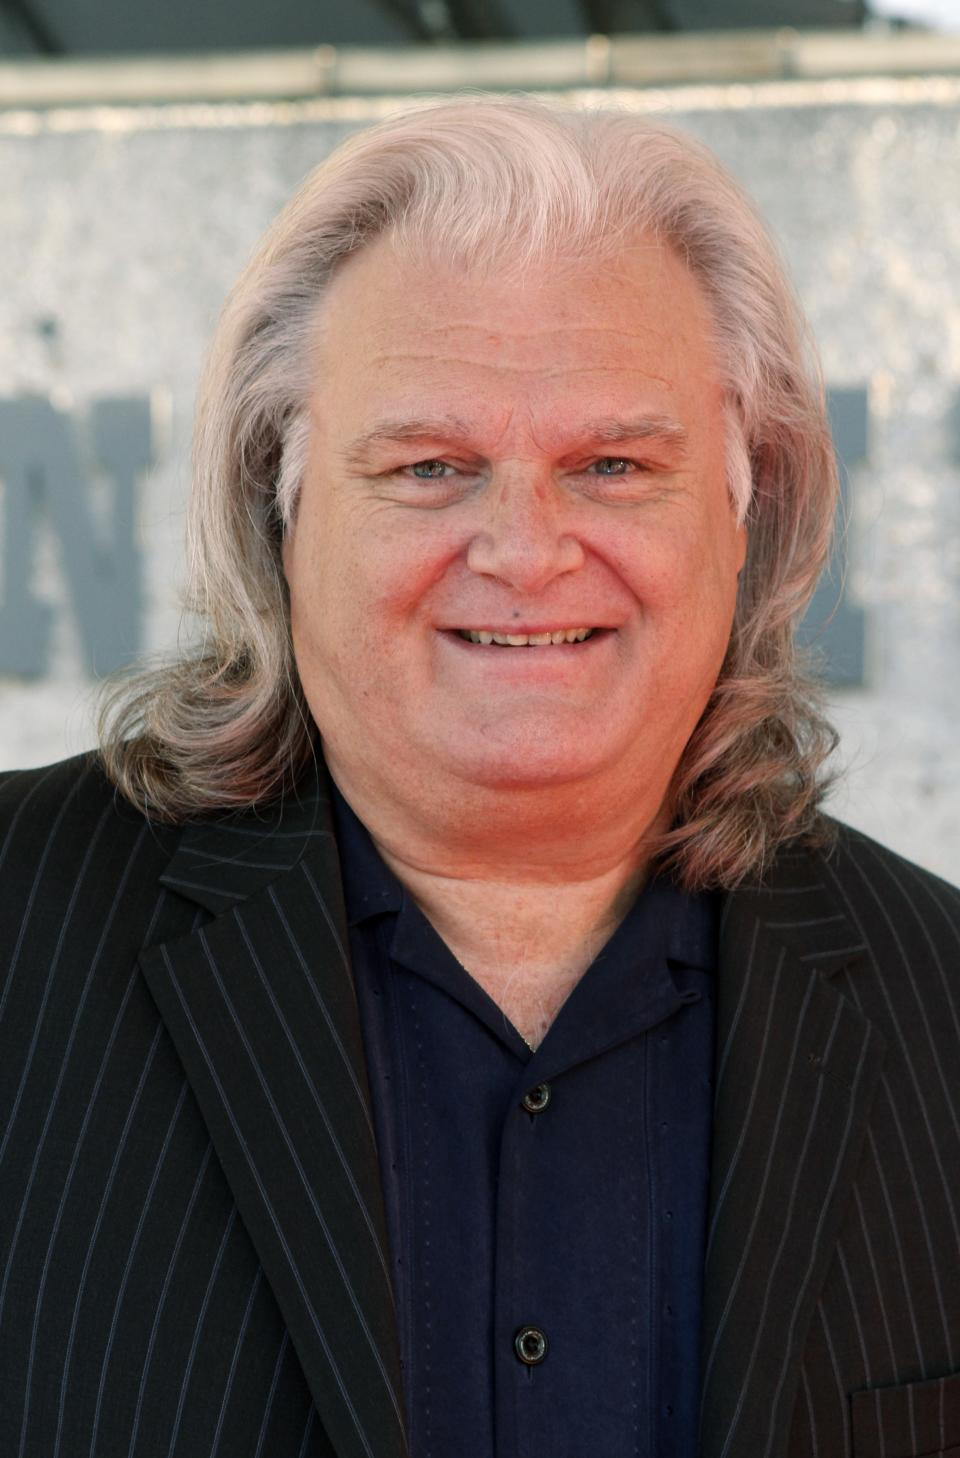 Ricky Skaggs attends the Country Music Hall of Fame Inductions on Sunday, Oct. 21, 2012 in Nashville, Tenn. (Photo by Wade Payne/Invision/AP)